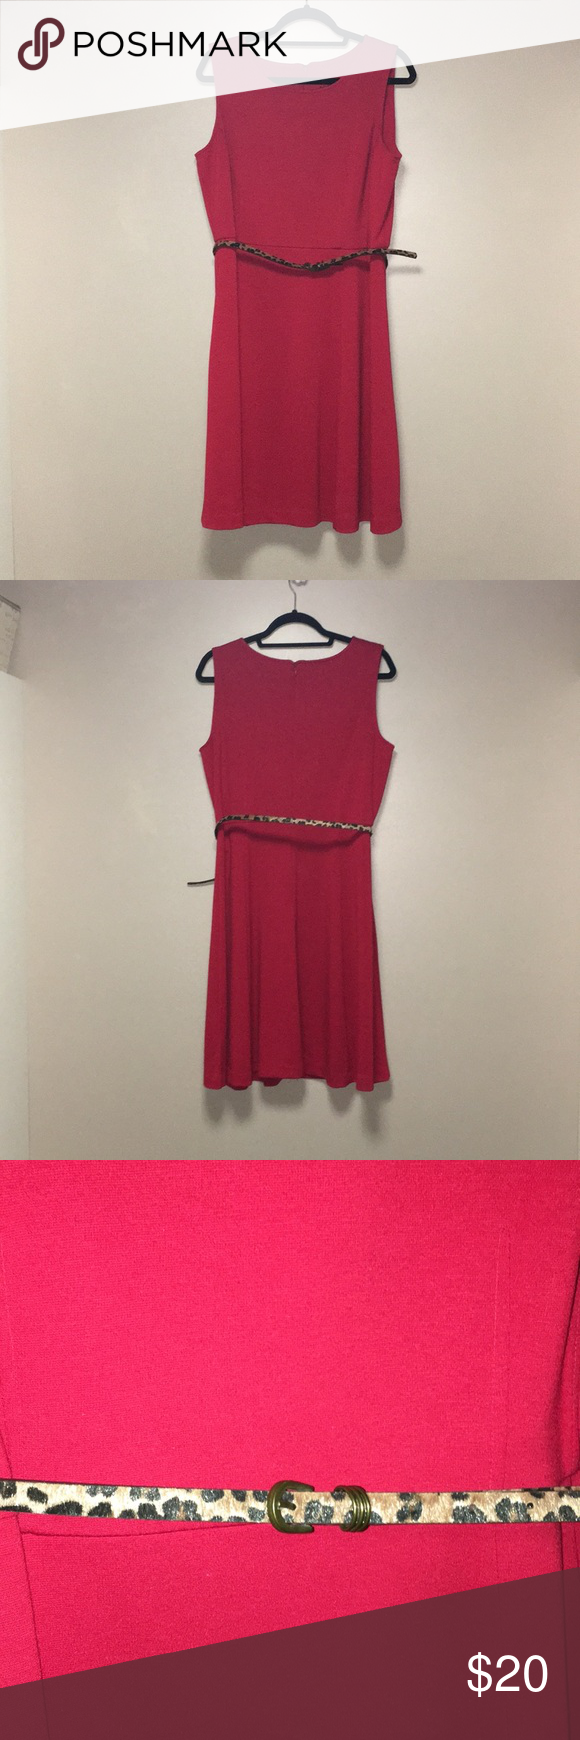 212 Collection Dress Red With Leopard Print Belt Guc 212 Collection Dress Red With Leopard Print Belt Great For Busine Dress Collection Red Dress Dresses